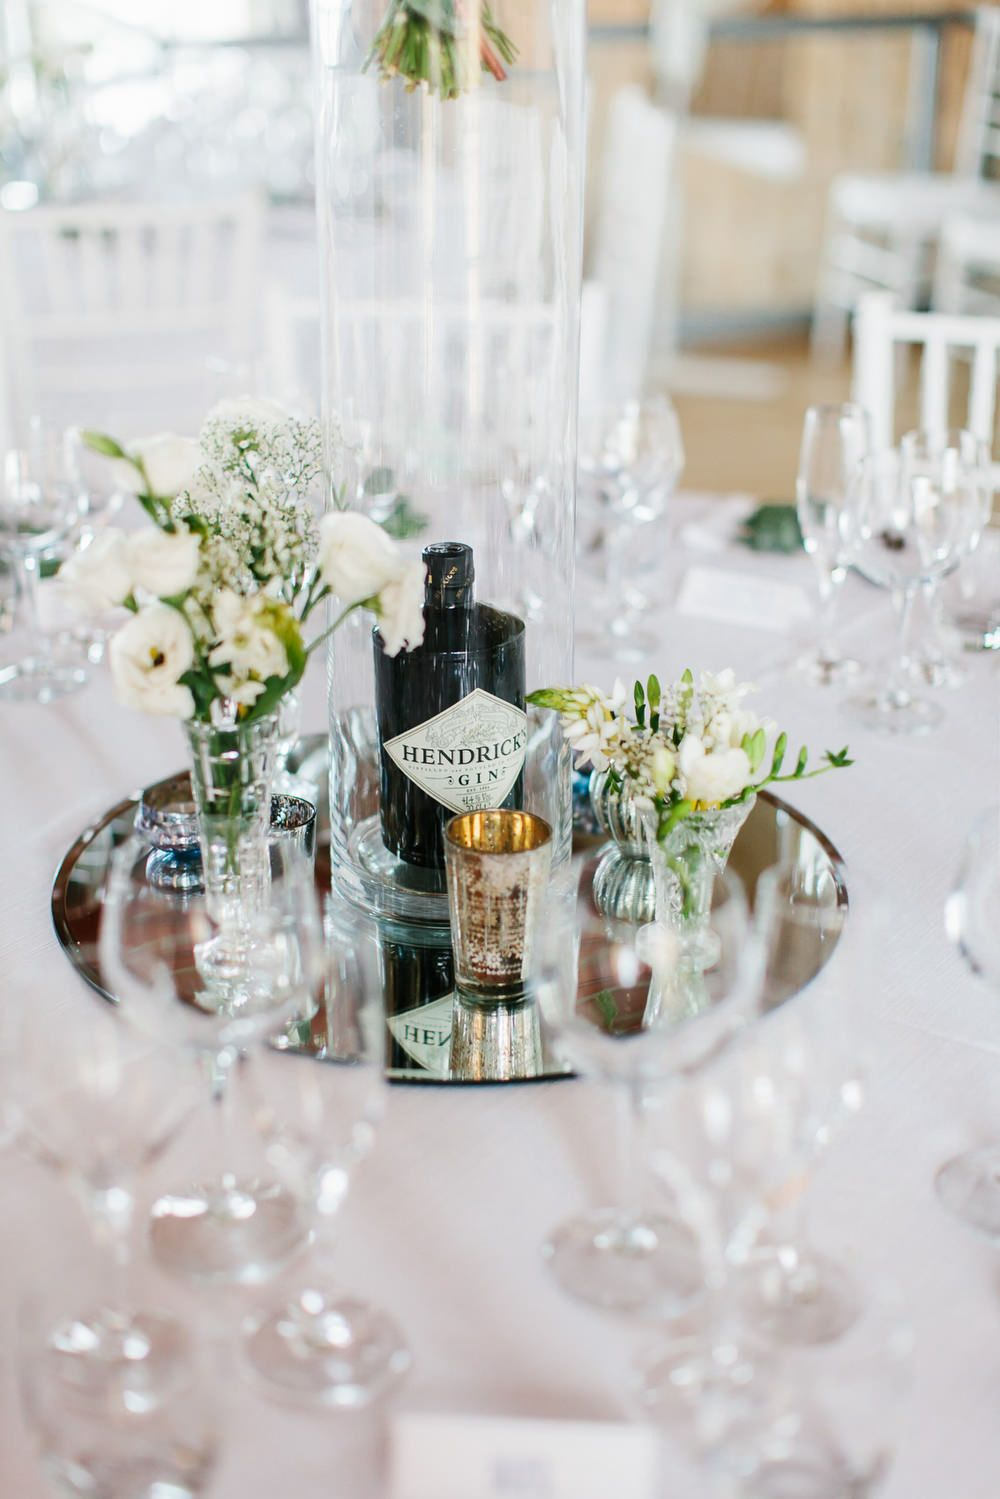 We really like the mirror/glass centre piece with a mix of silver /glass  tea light holders, candles and small flower vases.